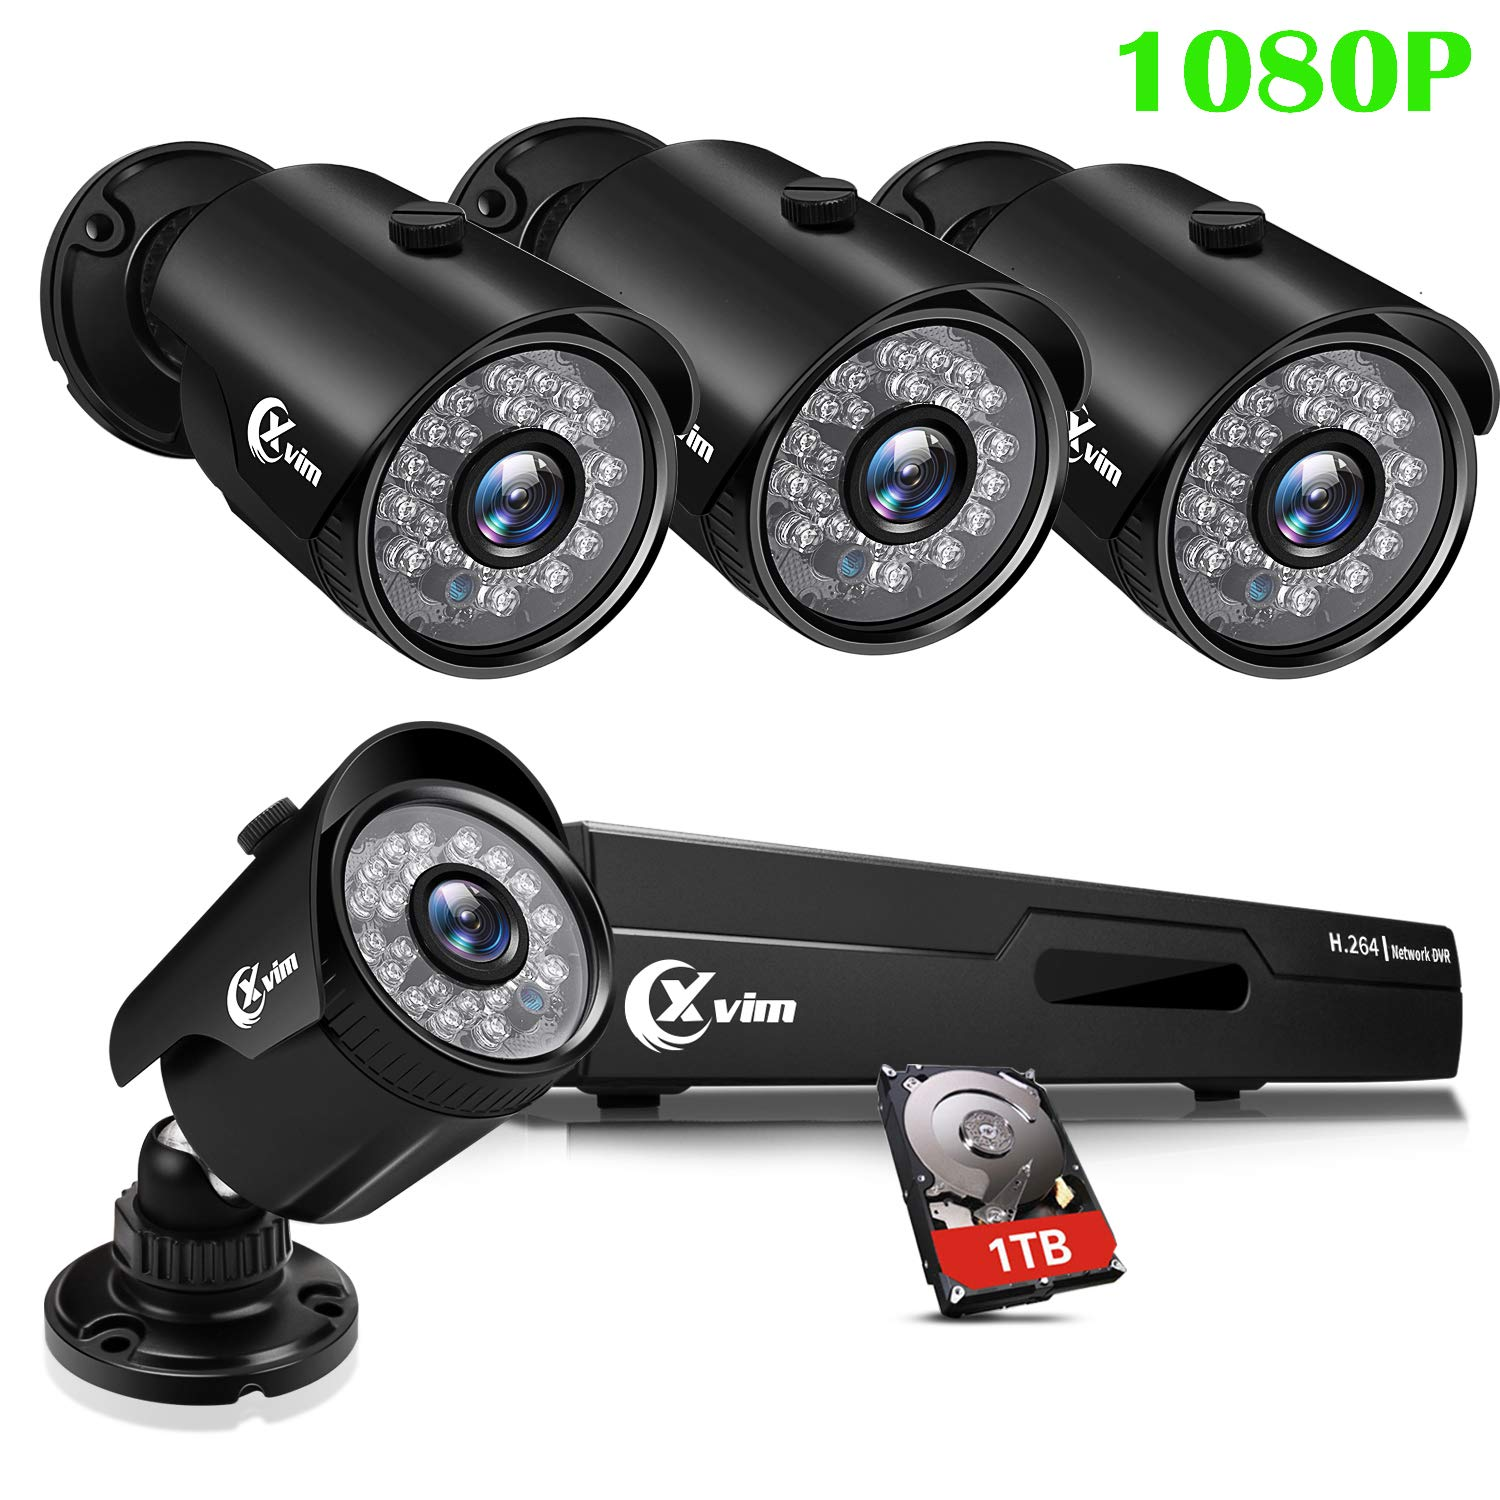 XVIM 8CH 1080P Security Camera System Home Outdoor 1TB Hard Drive Pre-Install CCTV Recorder 4pcs HD 1920TVL Upgrade Surveillance Cameras with Night Vision Easy Remote Access Motion Alert by X-VIM